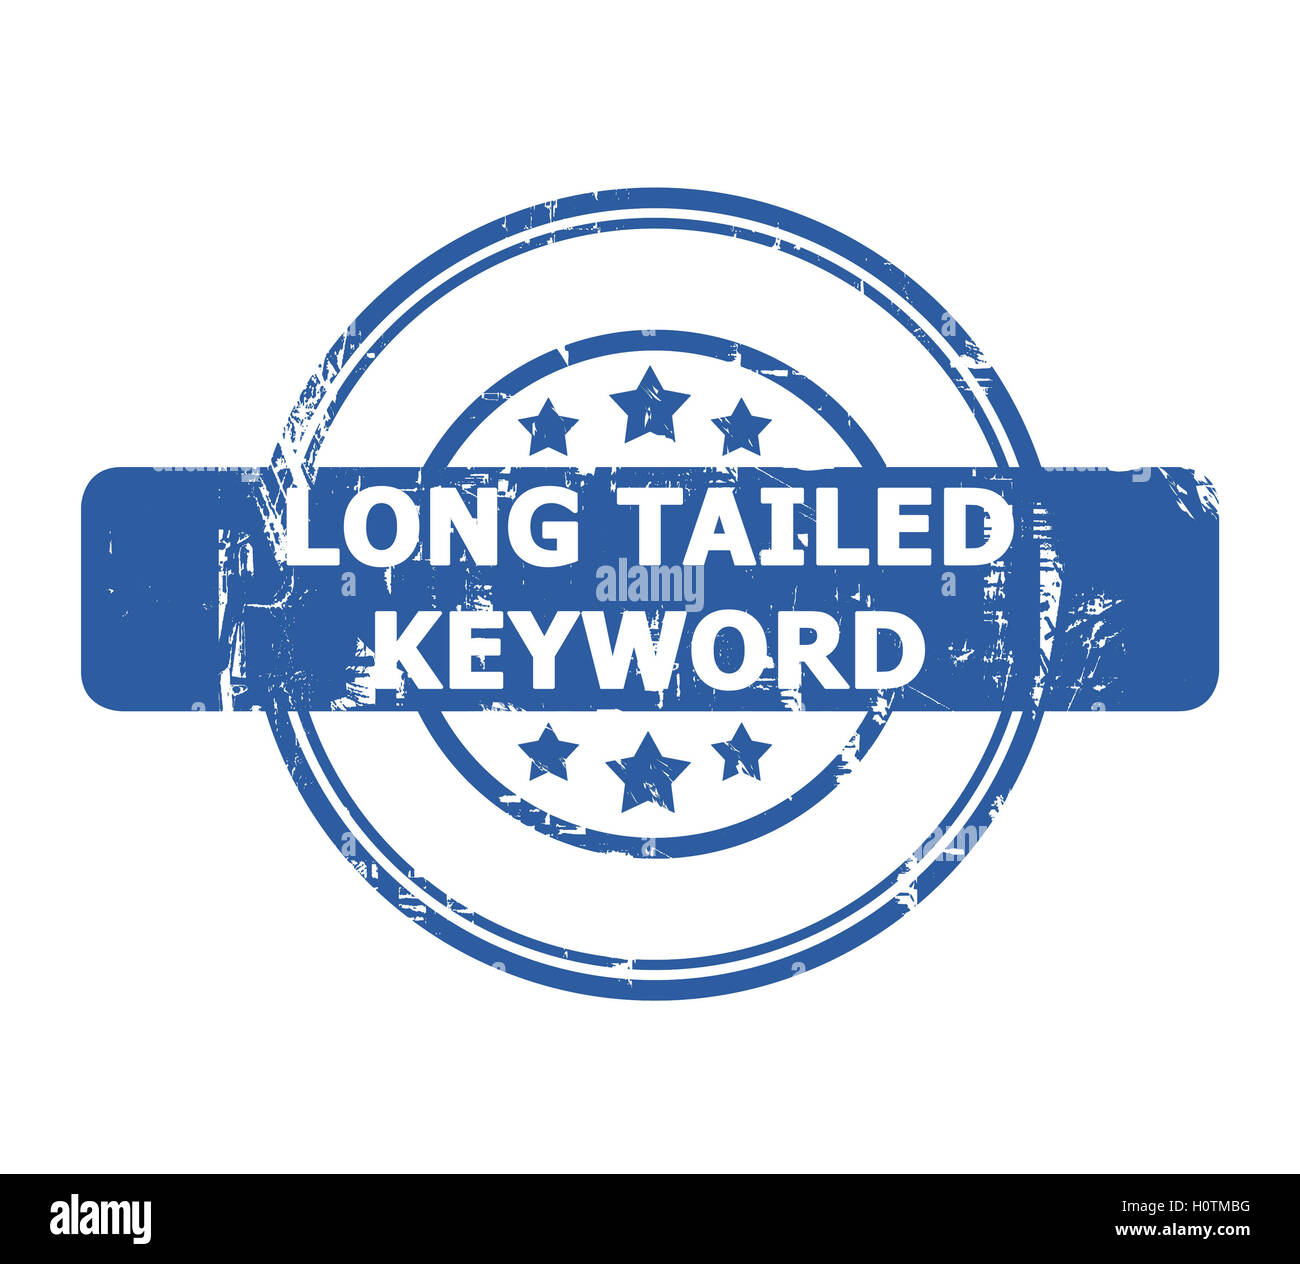 Long Tailed Keyword Stamp with stars isolated on a white background. - Stock Image